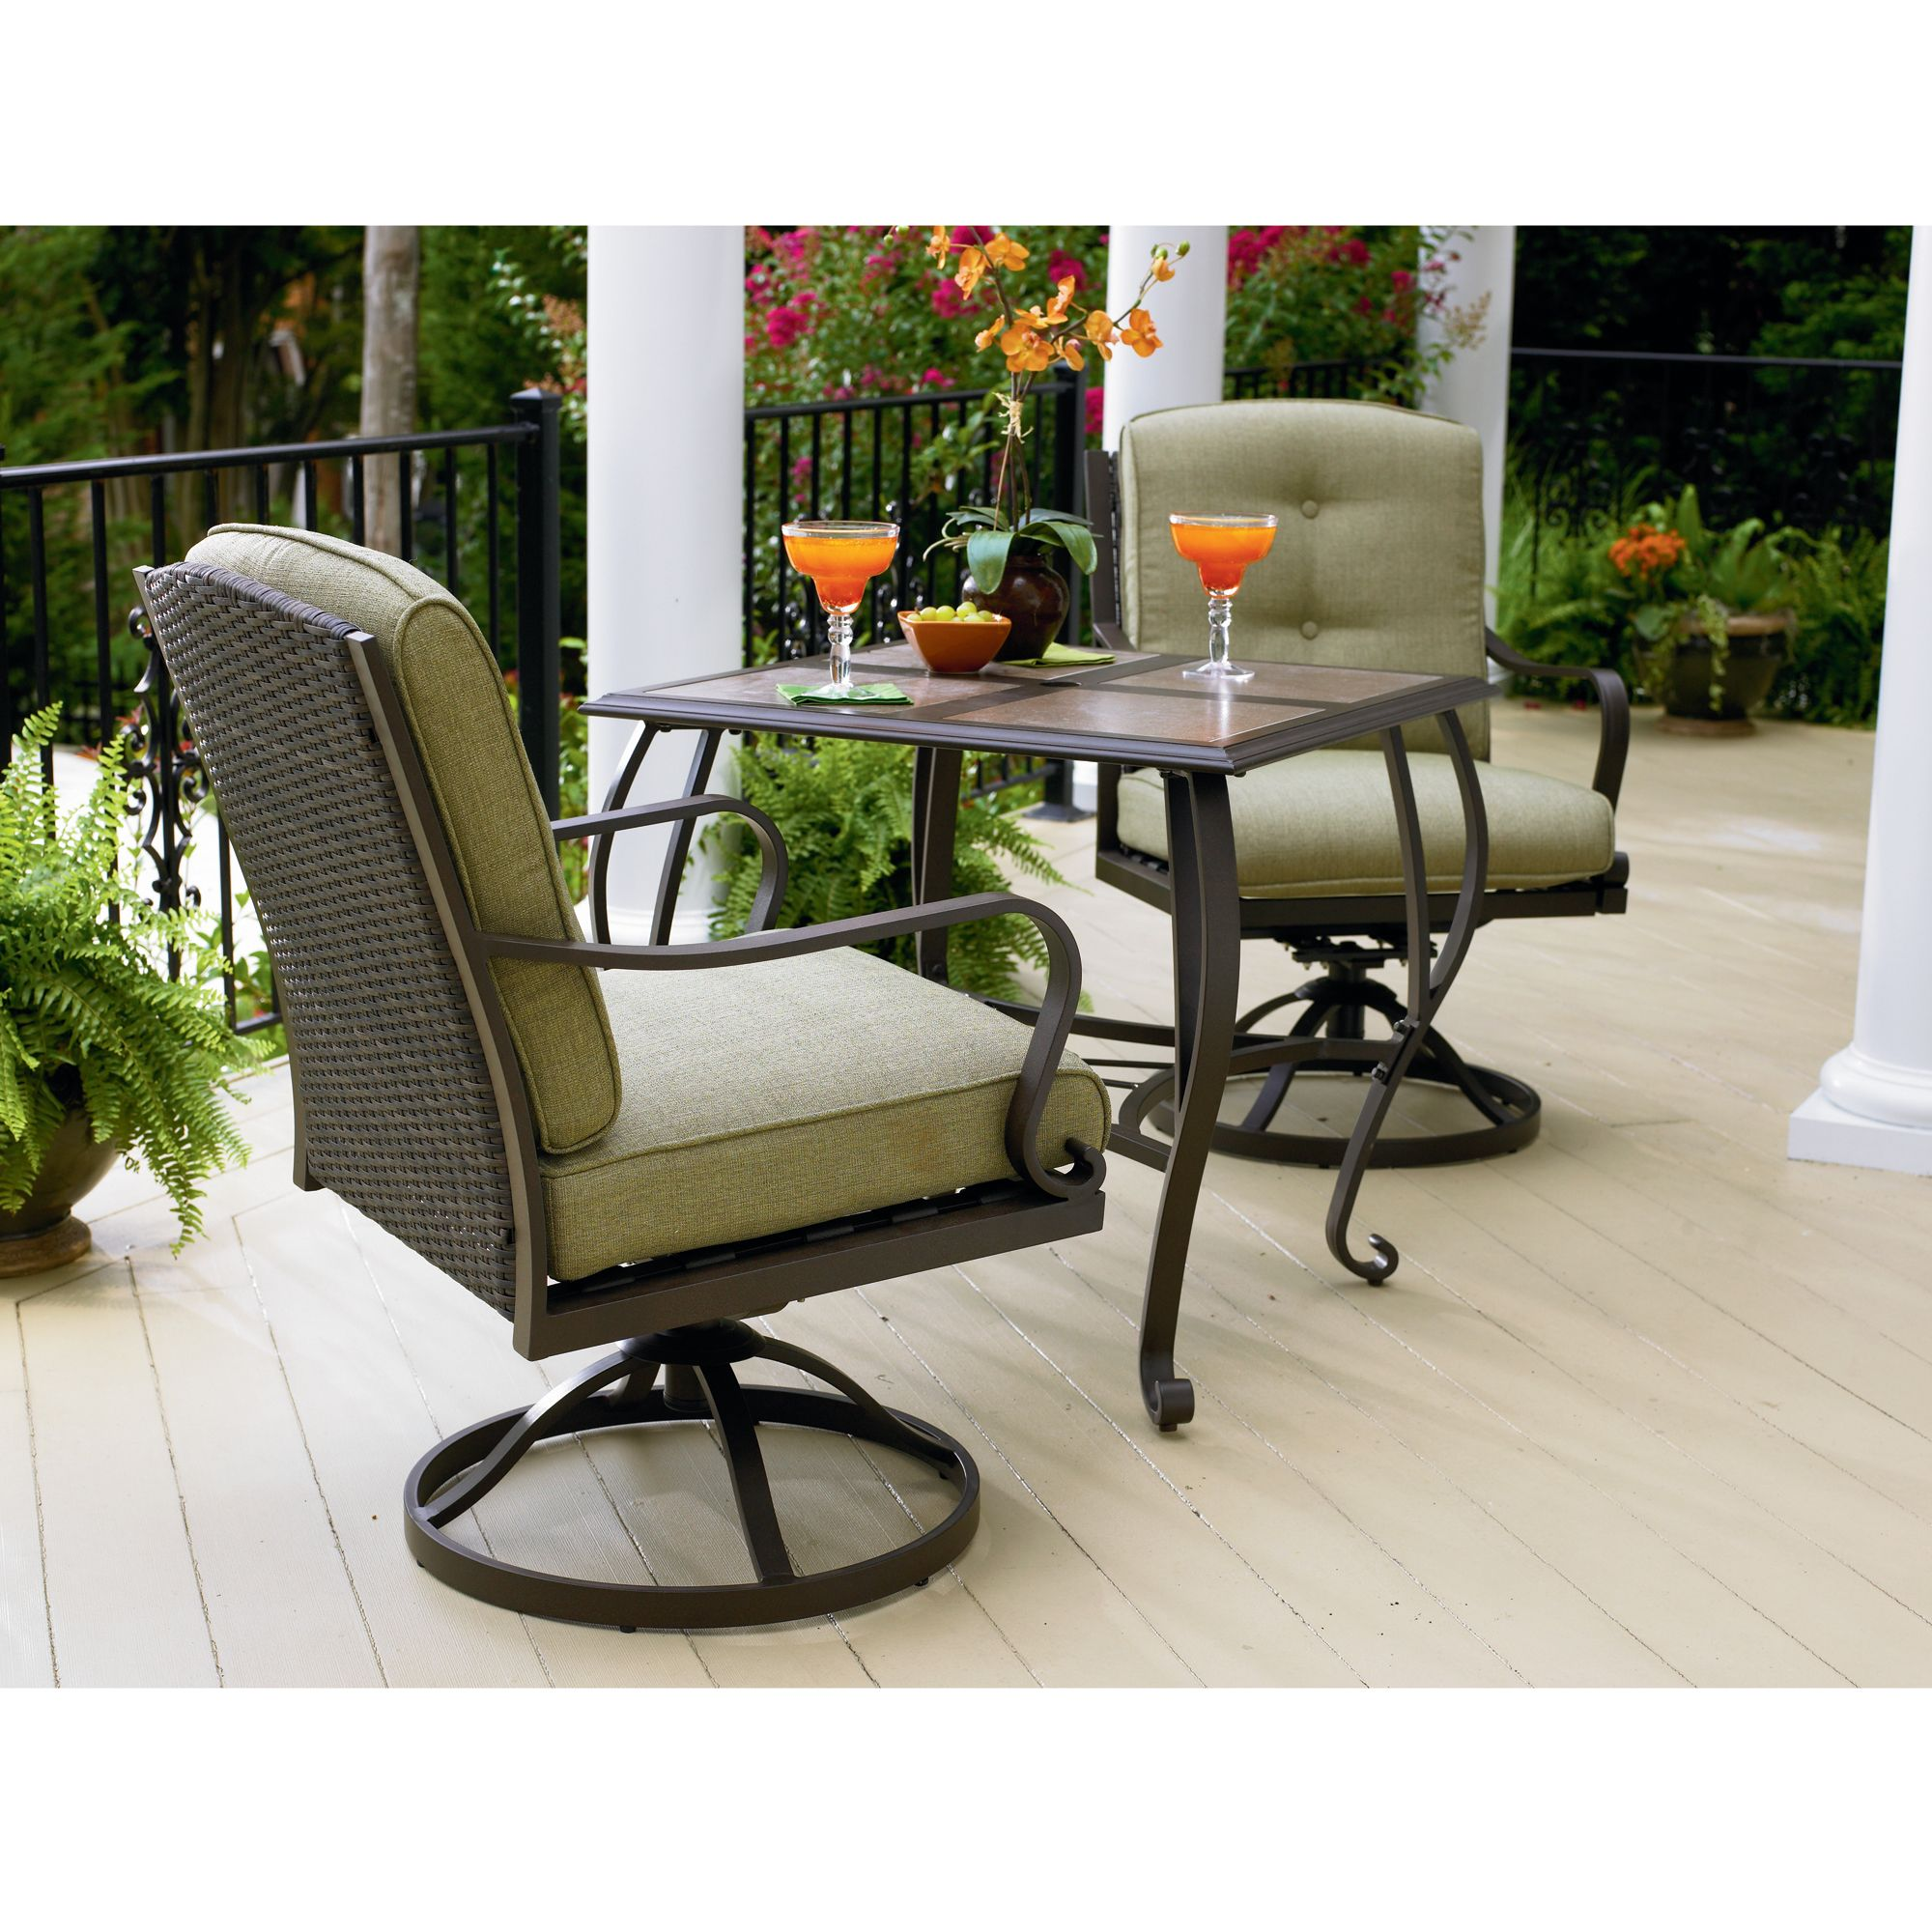 bistro patio set la z boy 3 piece bistro set: make relaxation a priority with sears KVOWPTD